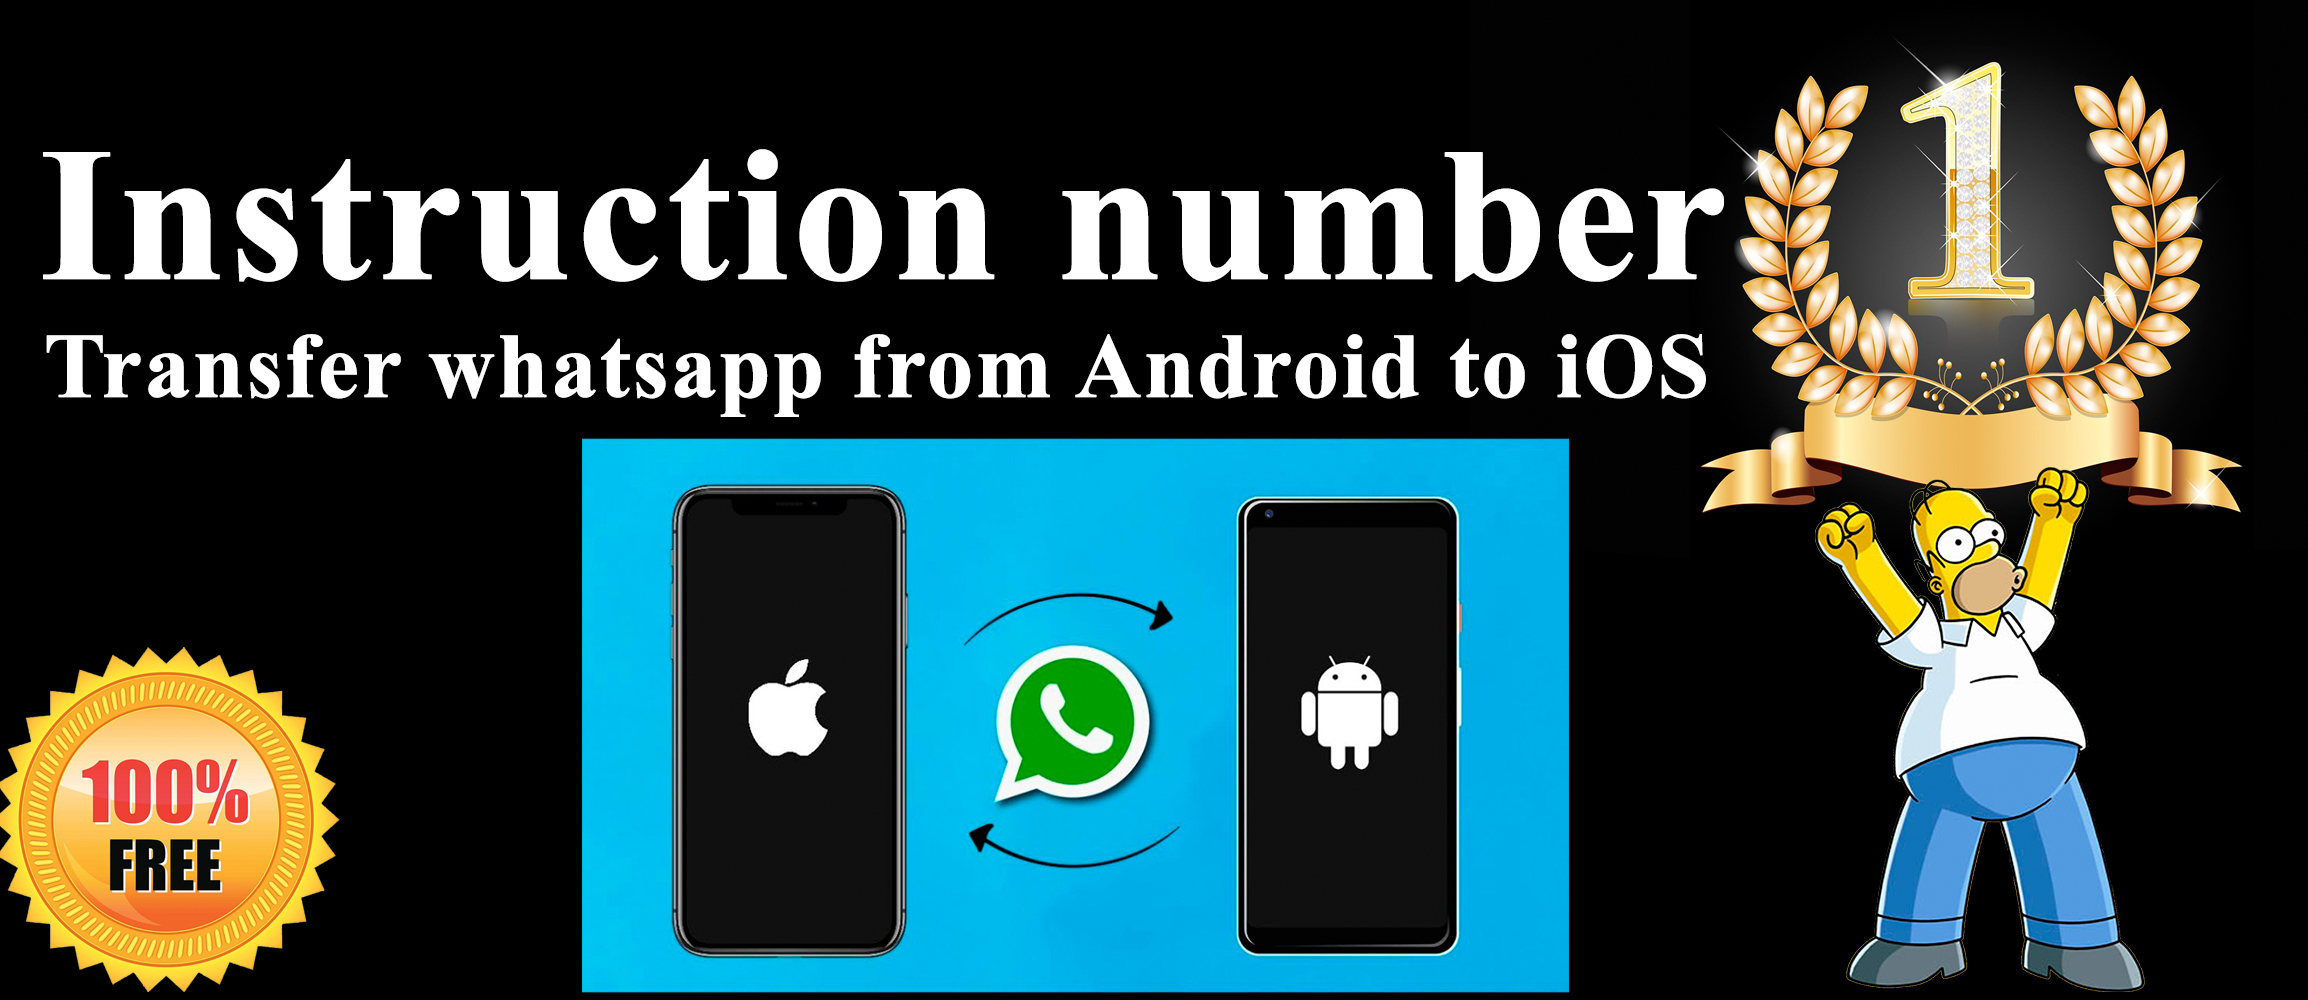 transfer whatsapp from Android to iOS